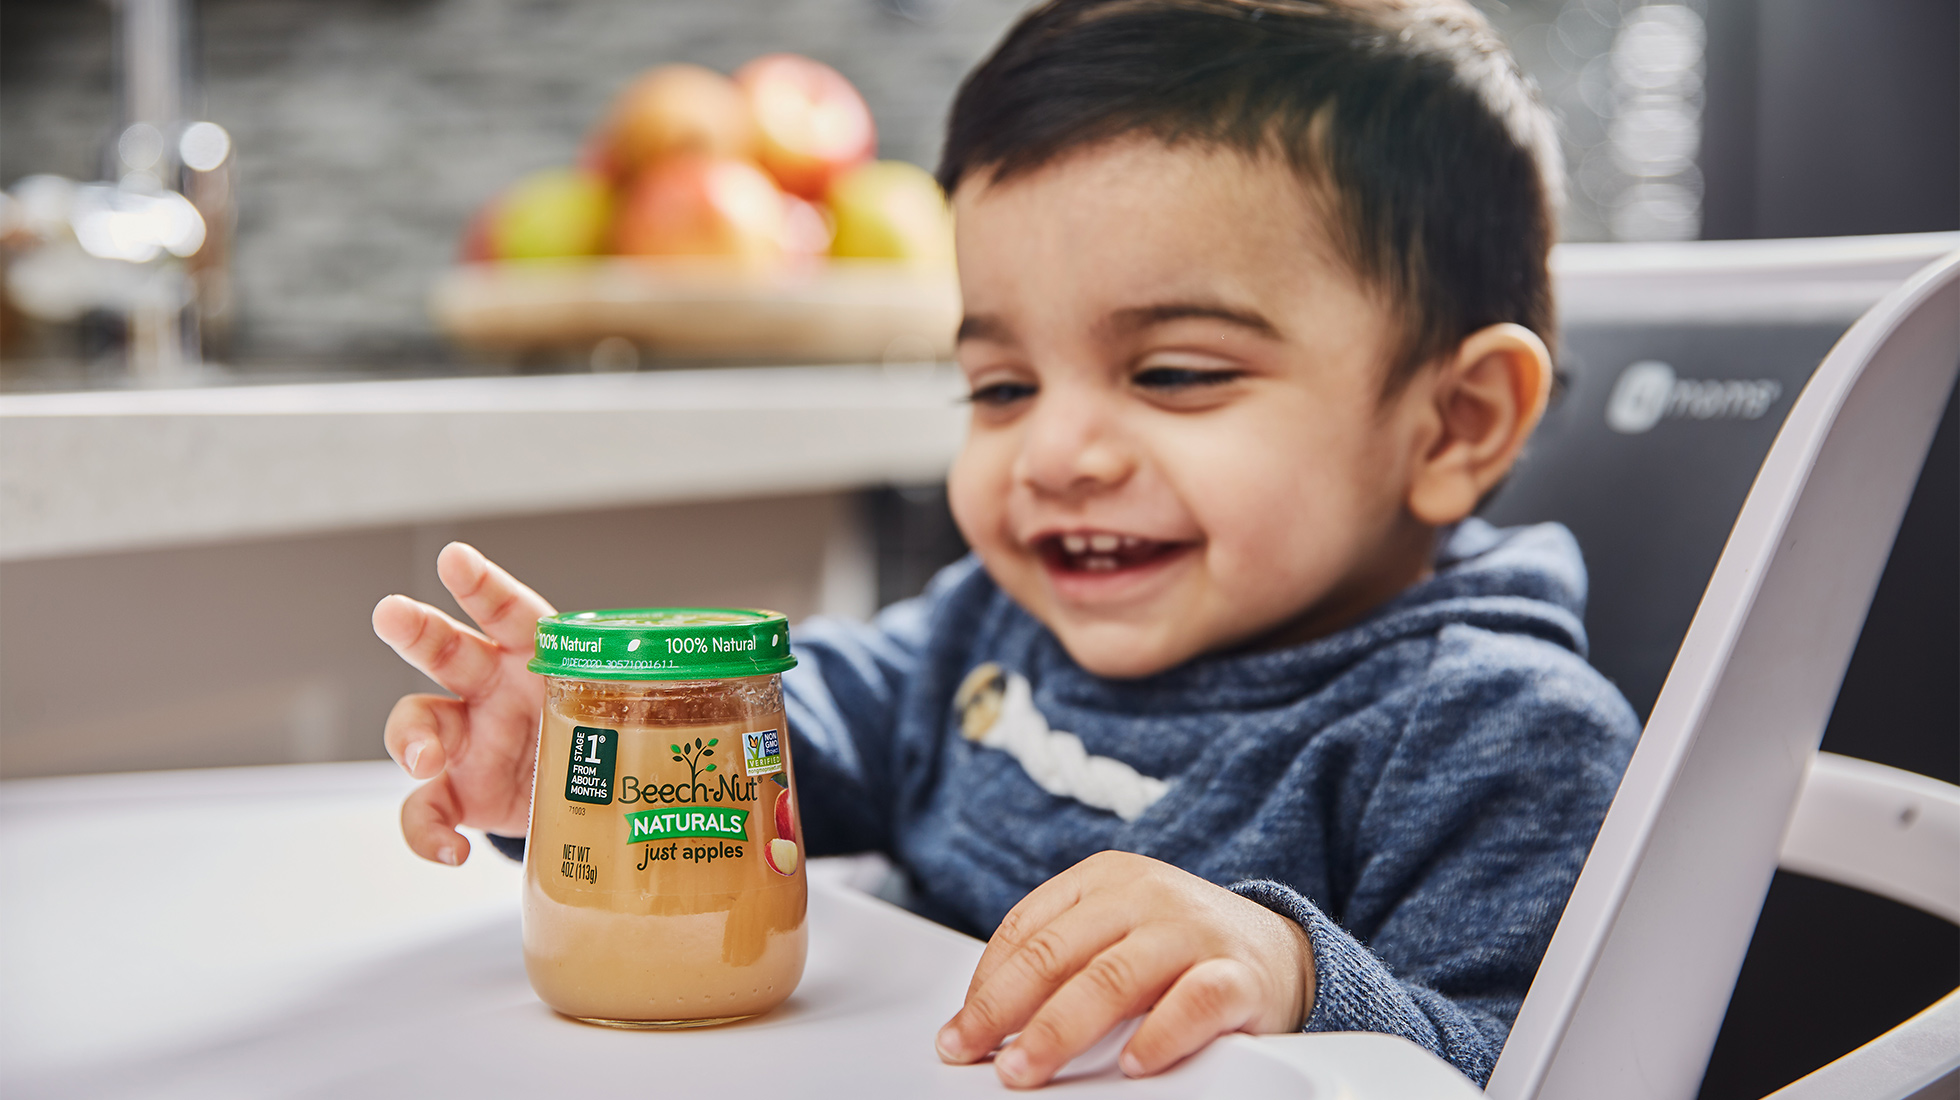 Infant enjoying Beech Nut Natural baby food